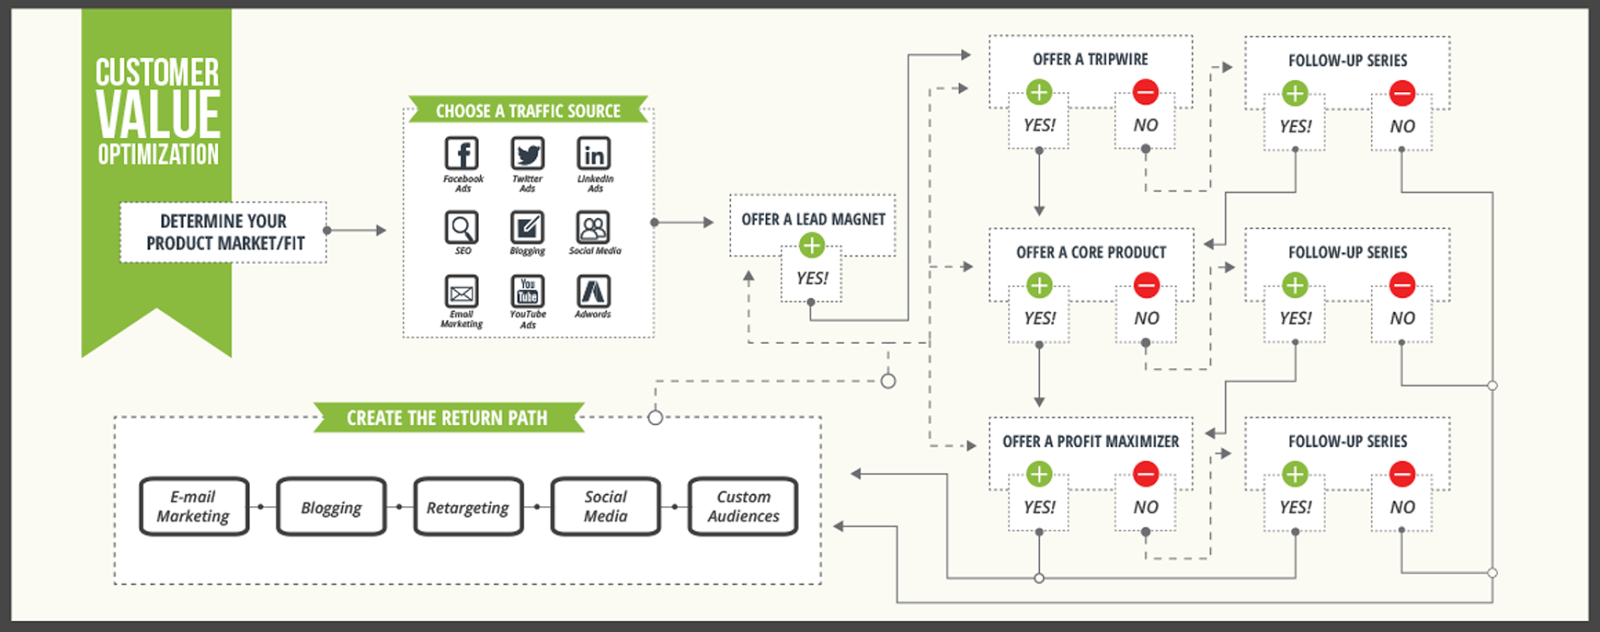 Conversion funnels are complex, and it's easy to lose someone along the way without CRO and AB testing.